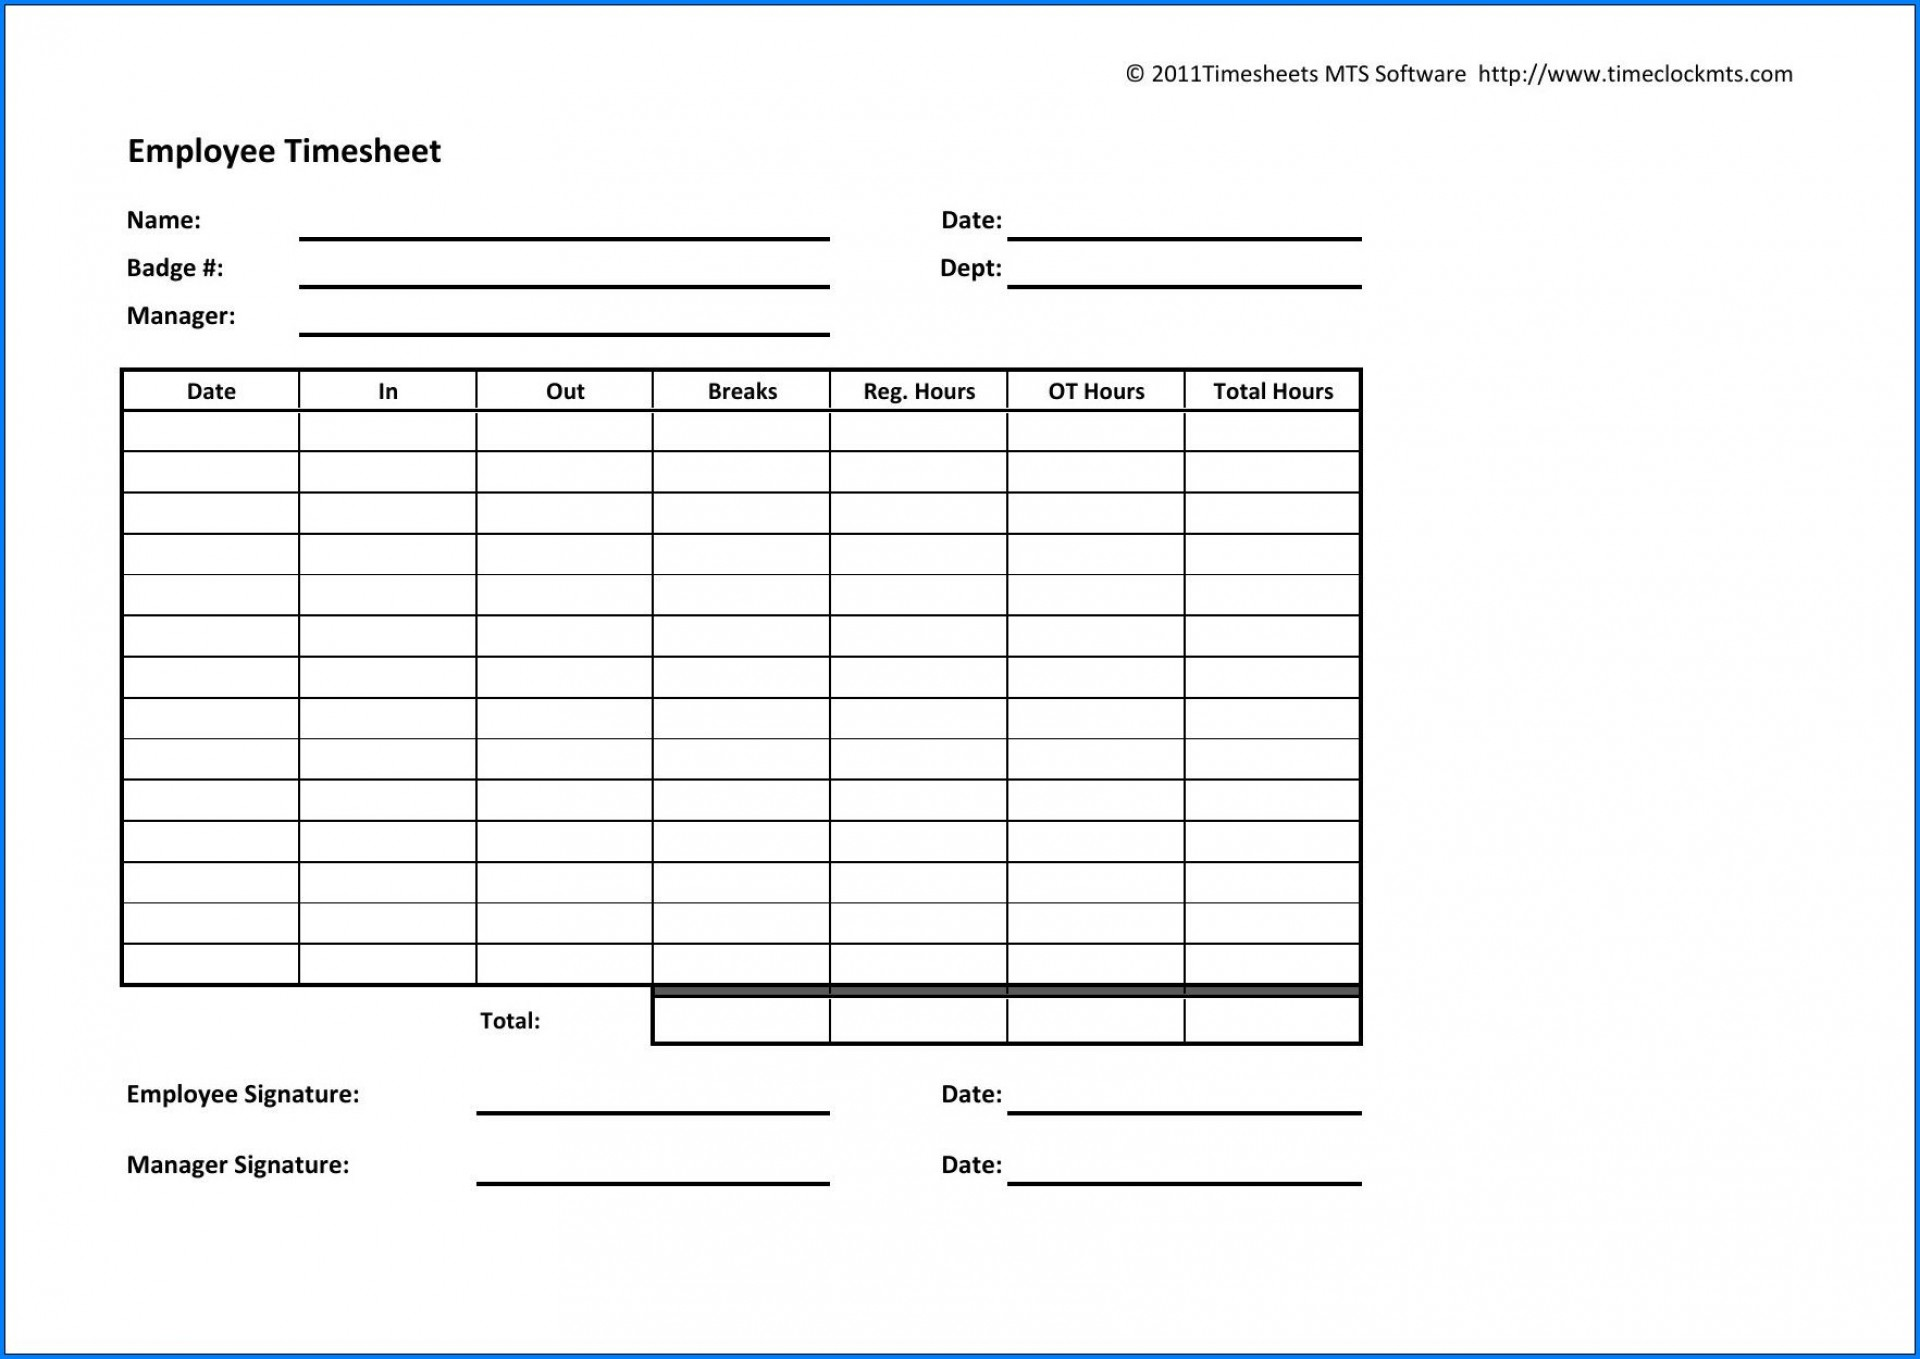 003 Dreaded Employee Time Card Sample Photo  Free Form Template1920